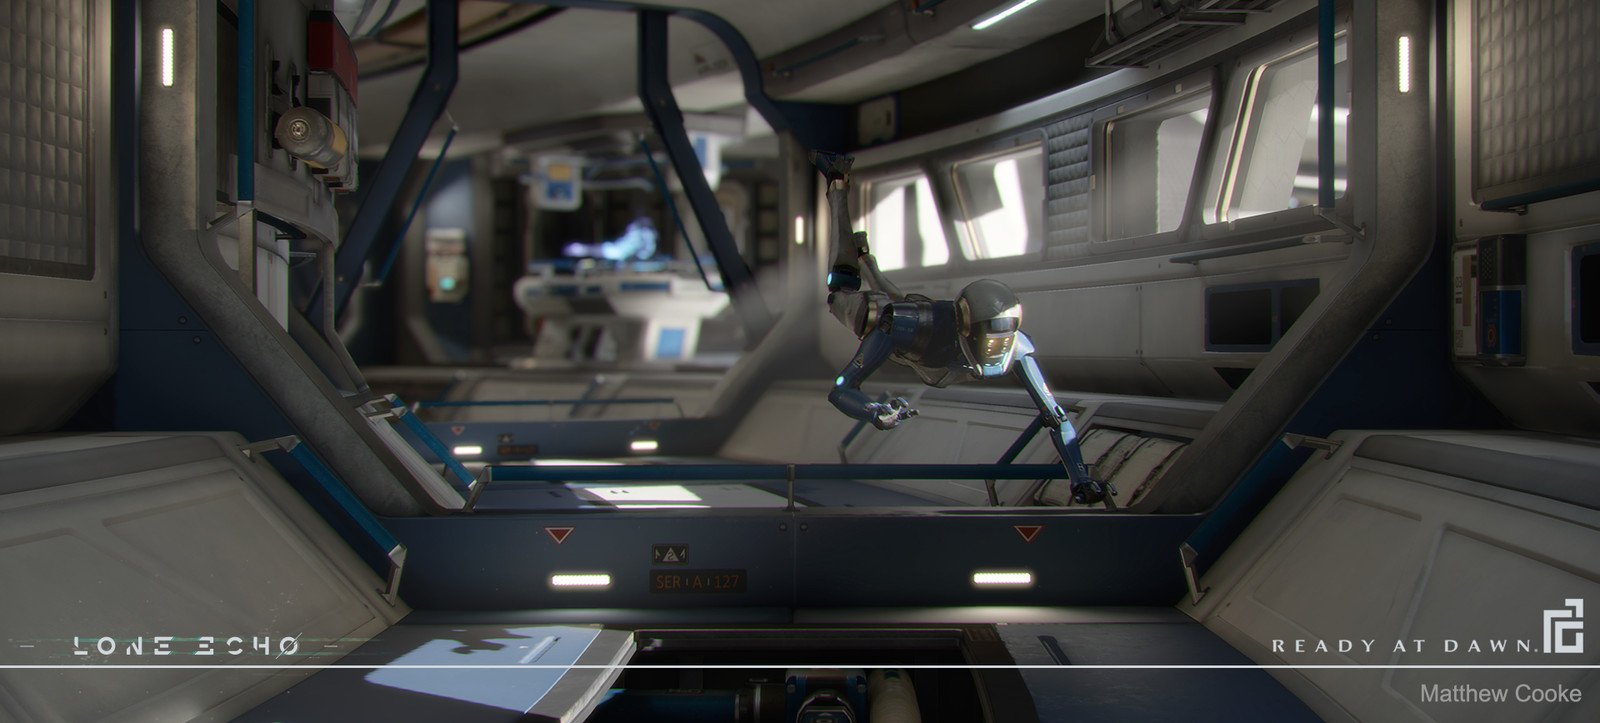 Station Interior - The robot was posed for this shot, not identical in-game.